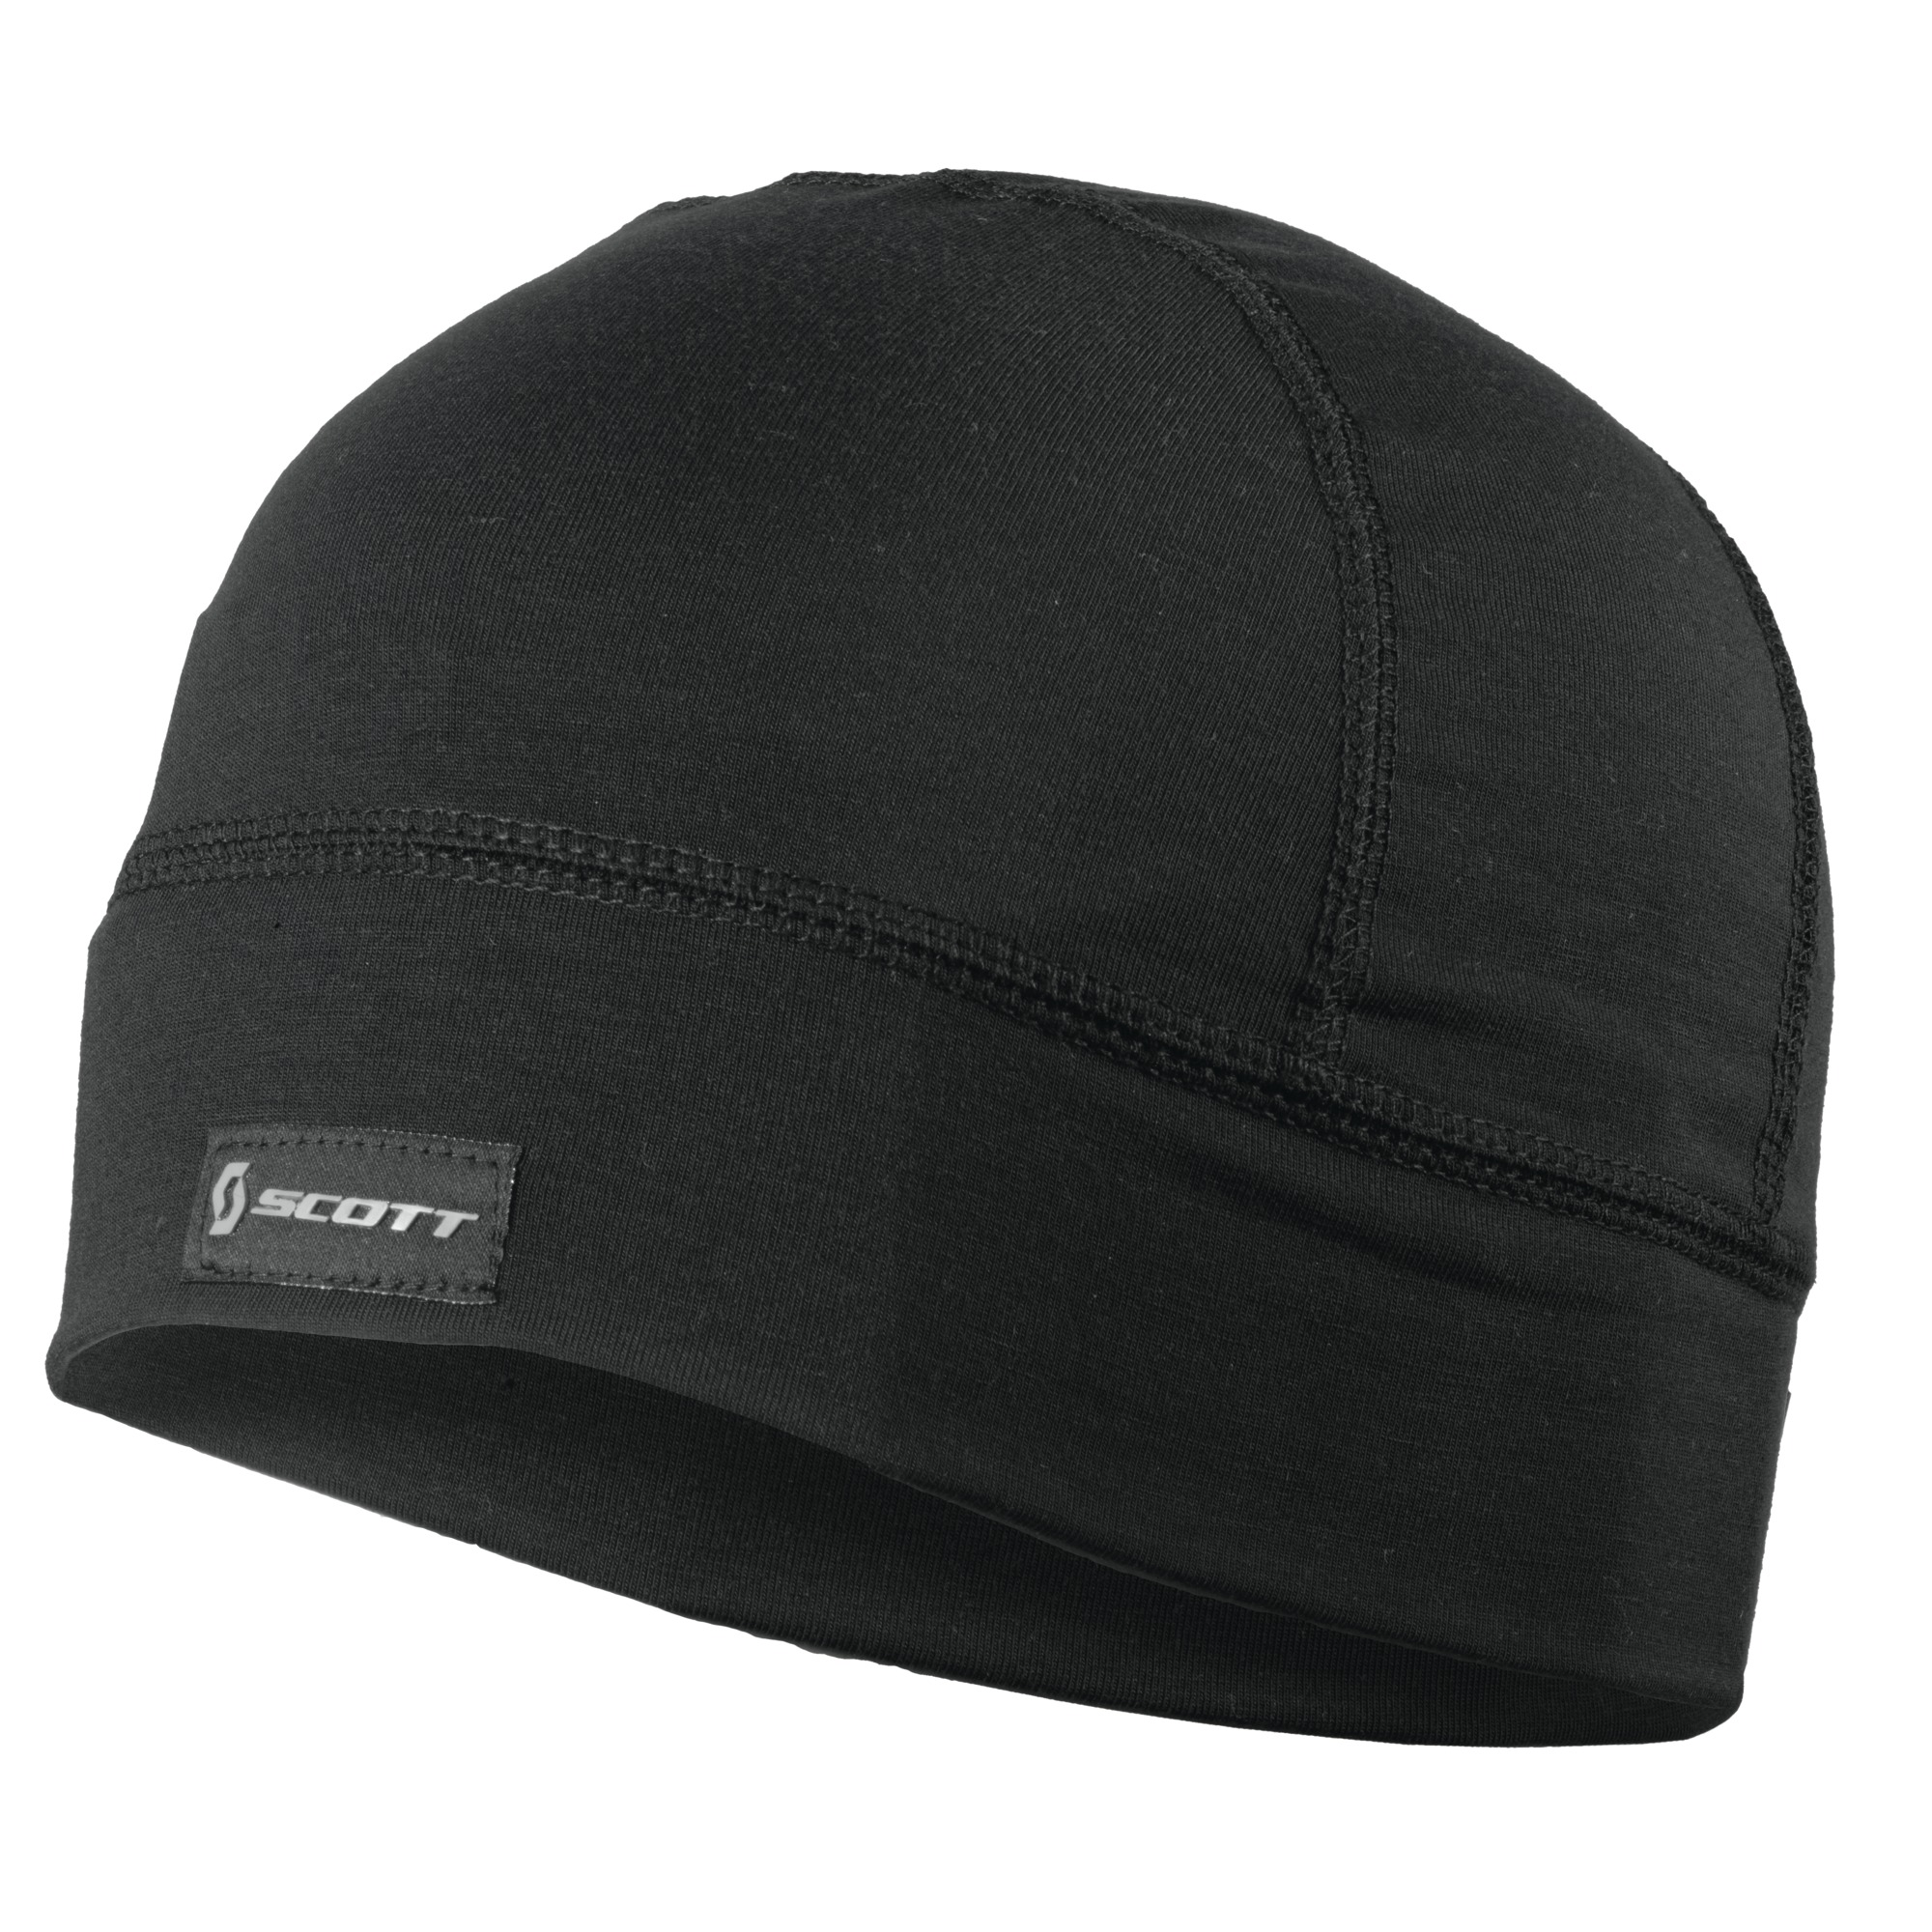 SCOTT MW Skully Beanie